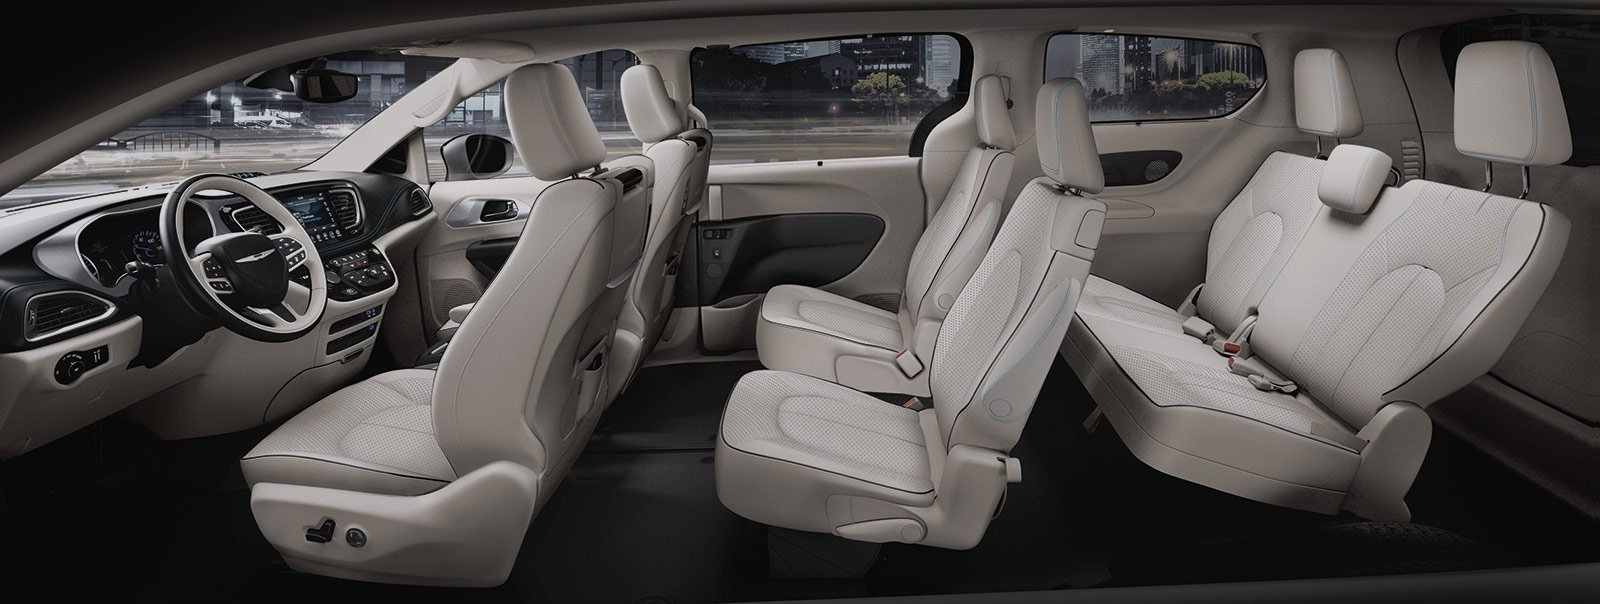 Chrysler Pacifica Vans Amp Minivans Fca Driveability Program